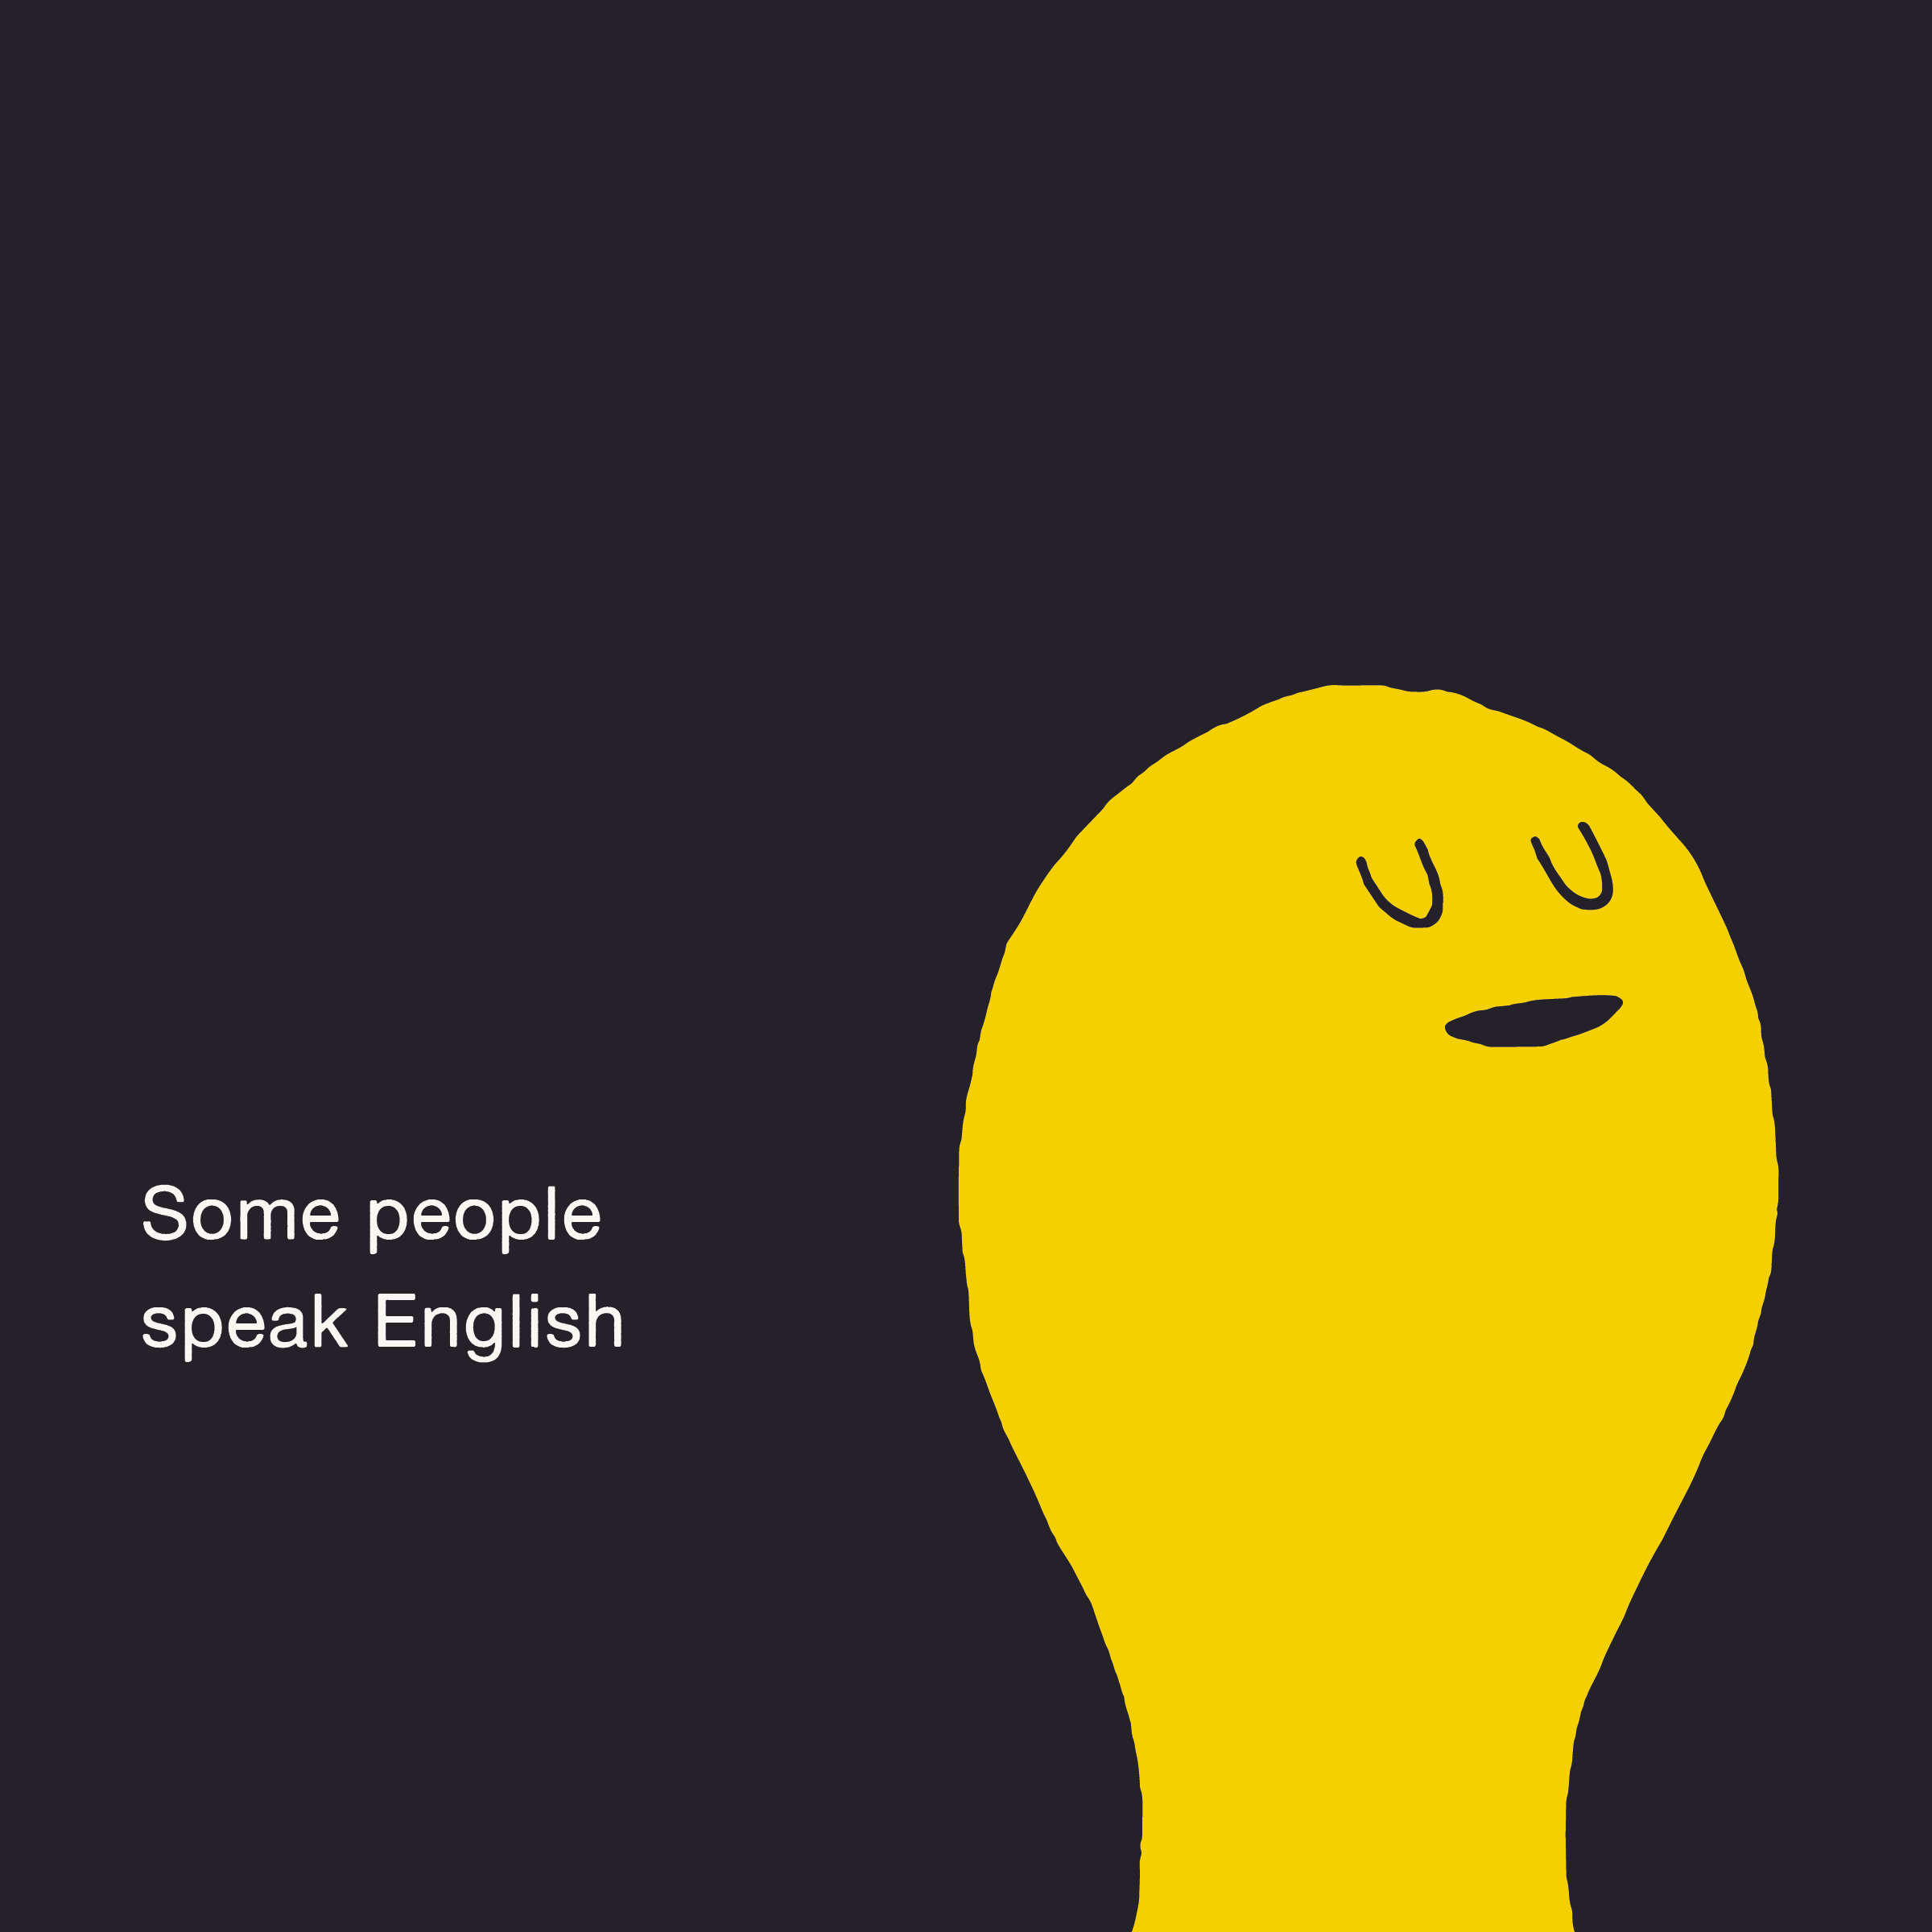 We_Are_Some_People-84-CDR.png